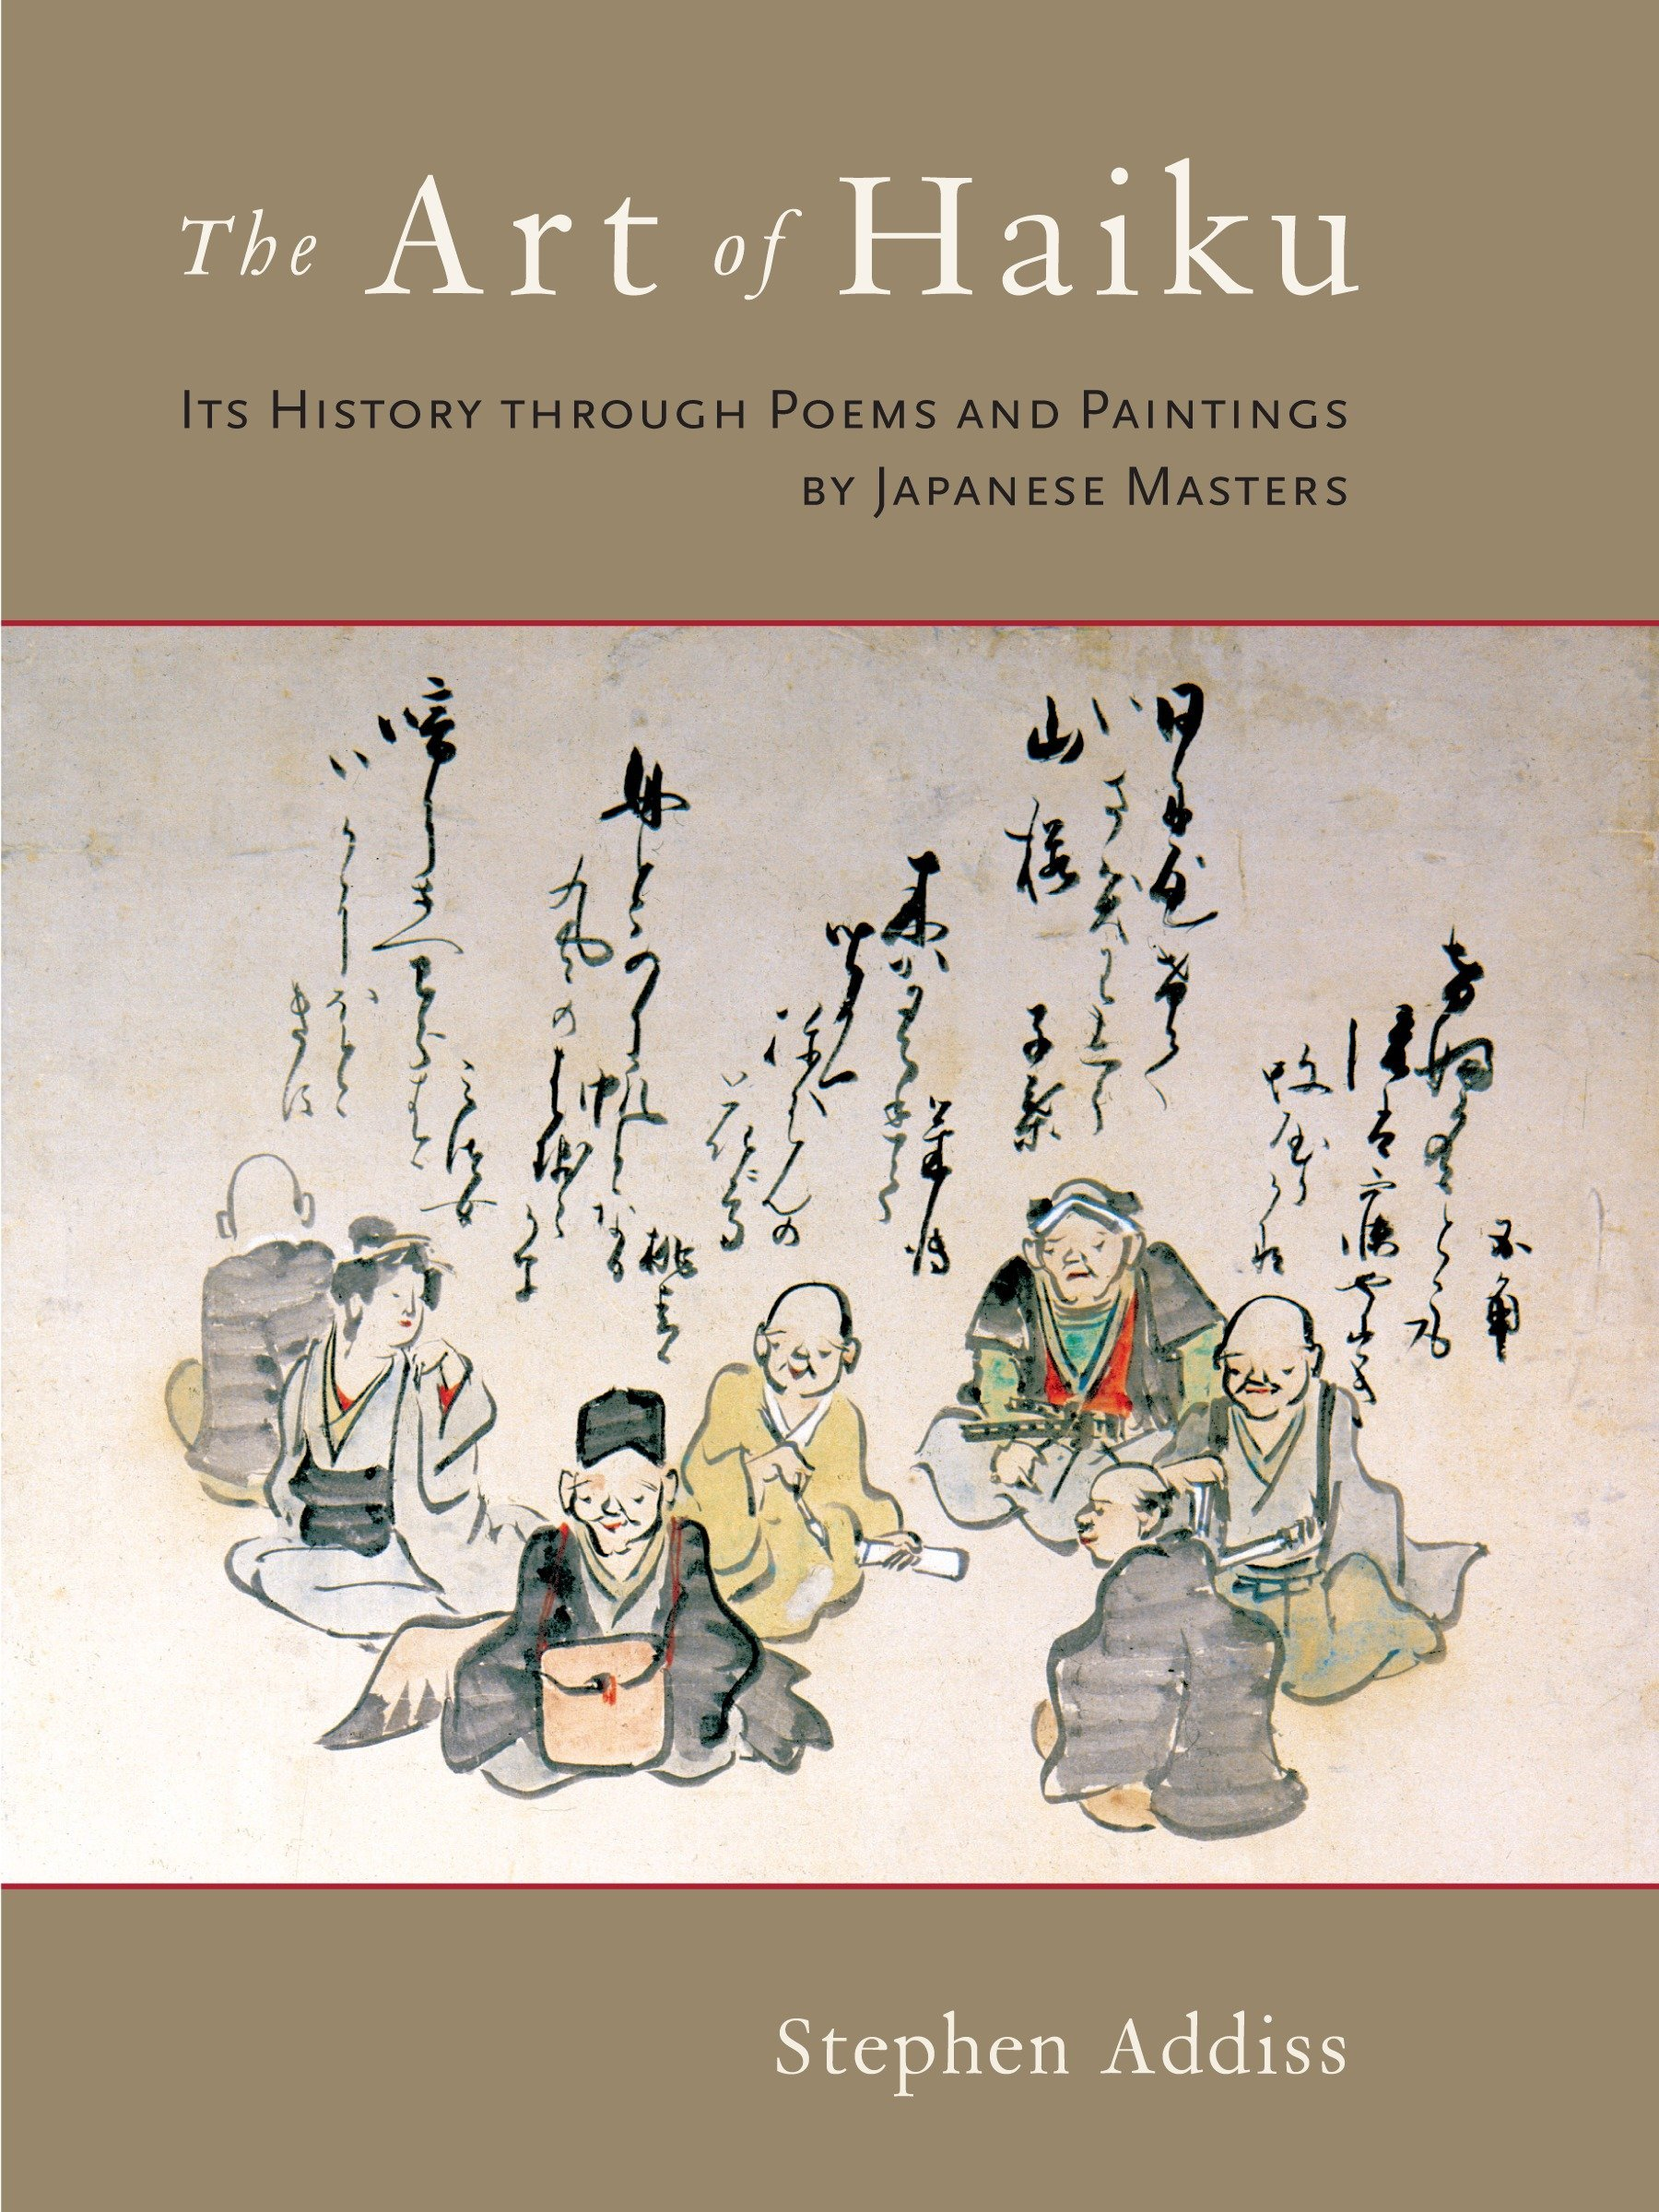 Download The Art of Haiku: Its History through Poems and Paintings by Japanese Masters PDF